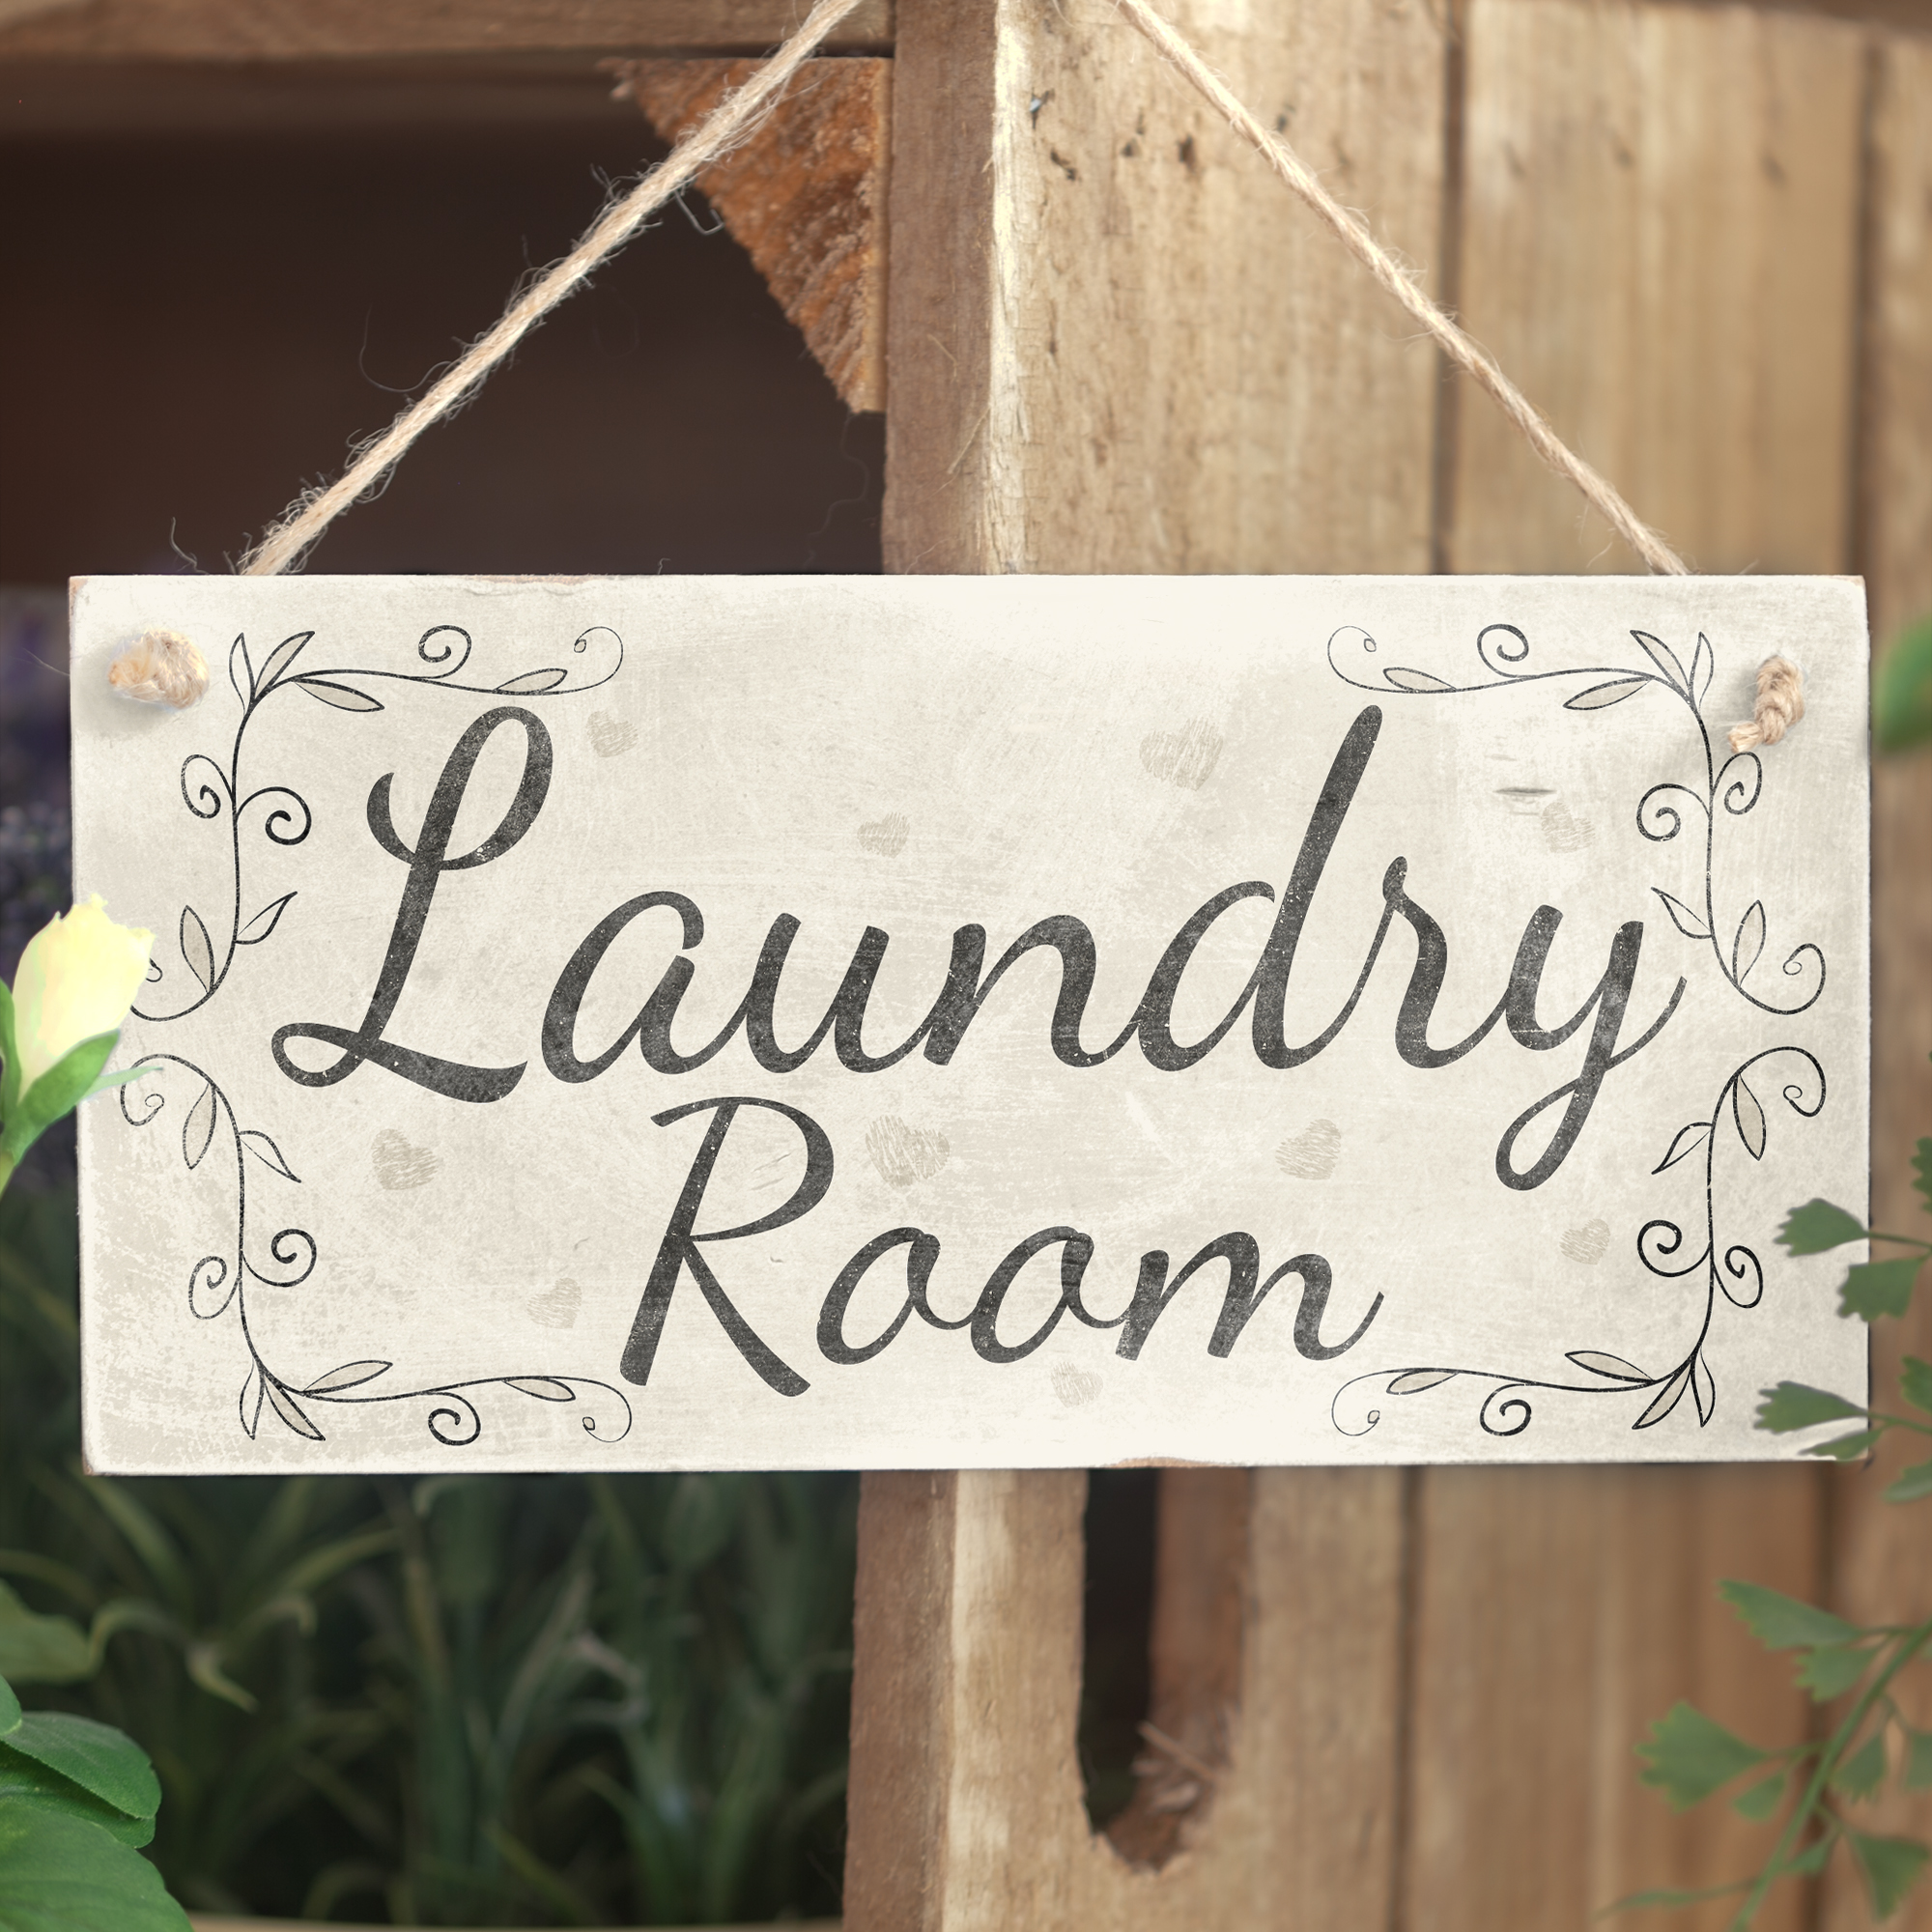 Laundry Room Wall Plaques Custom Laundry Room  Handmade Rustic Country Wooden Hanging Door Or Wall Decorating Inspiration